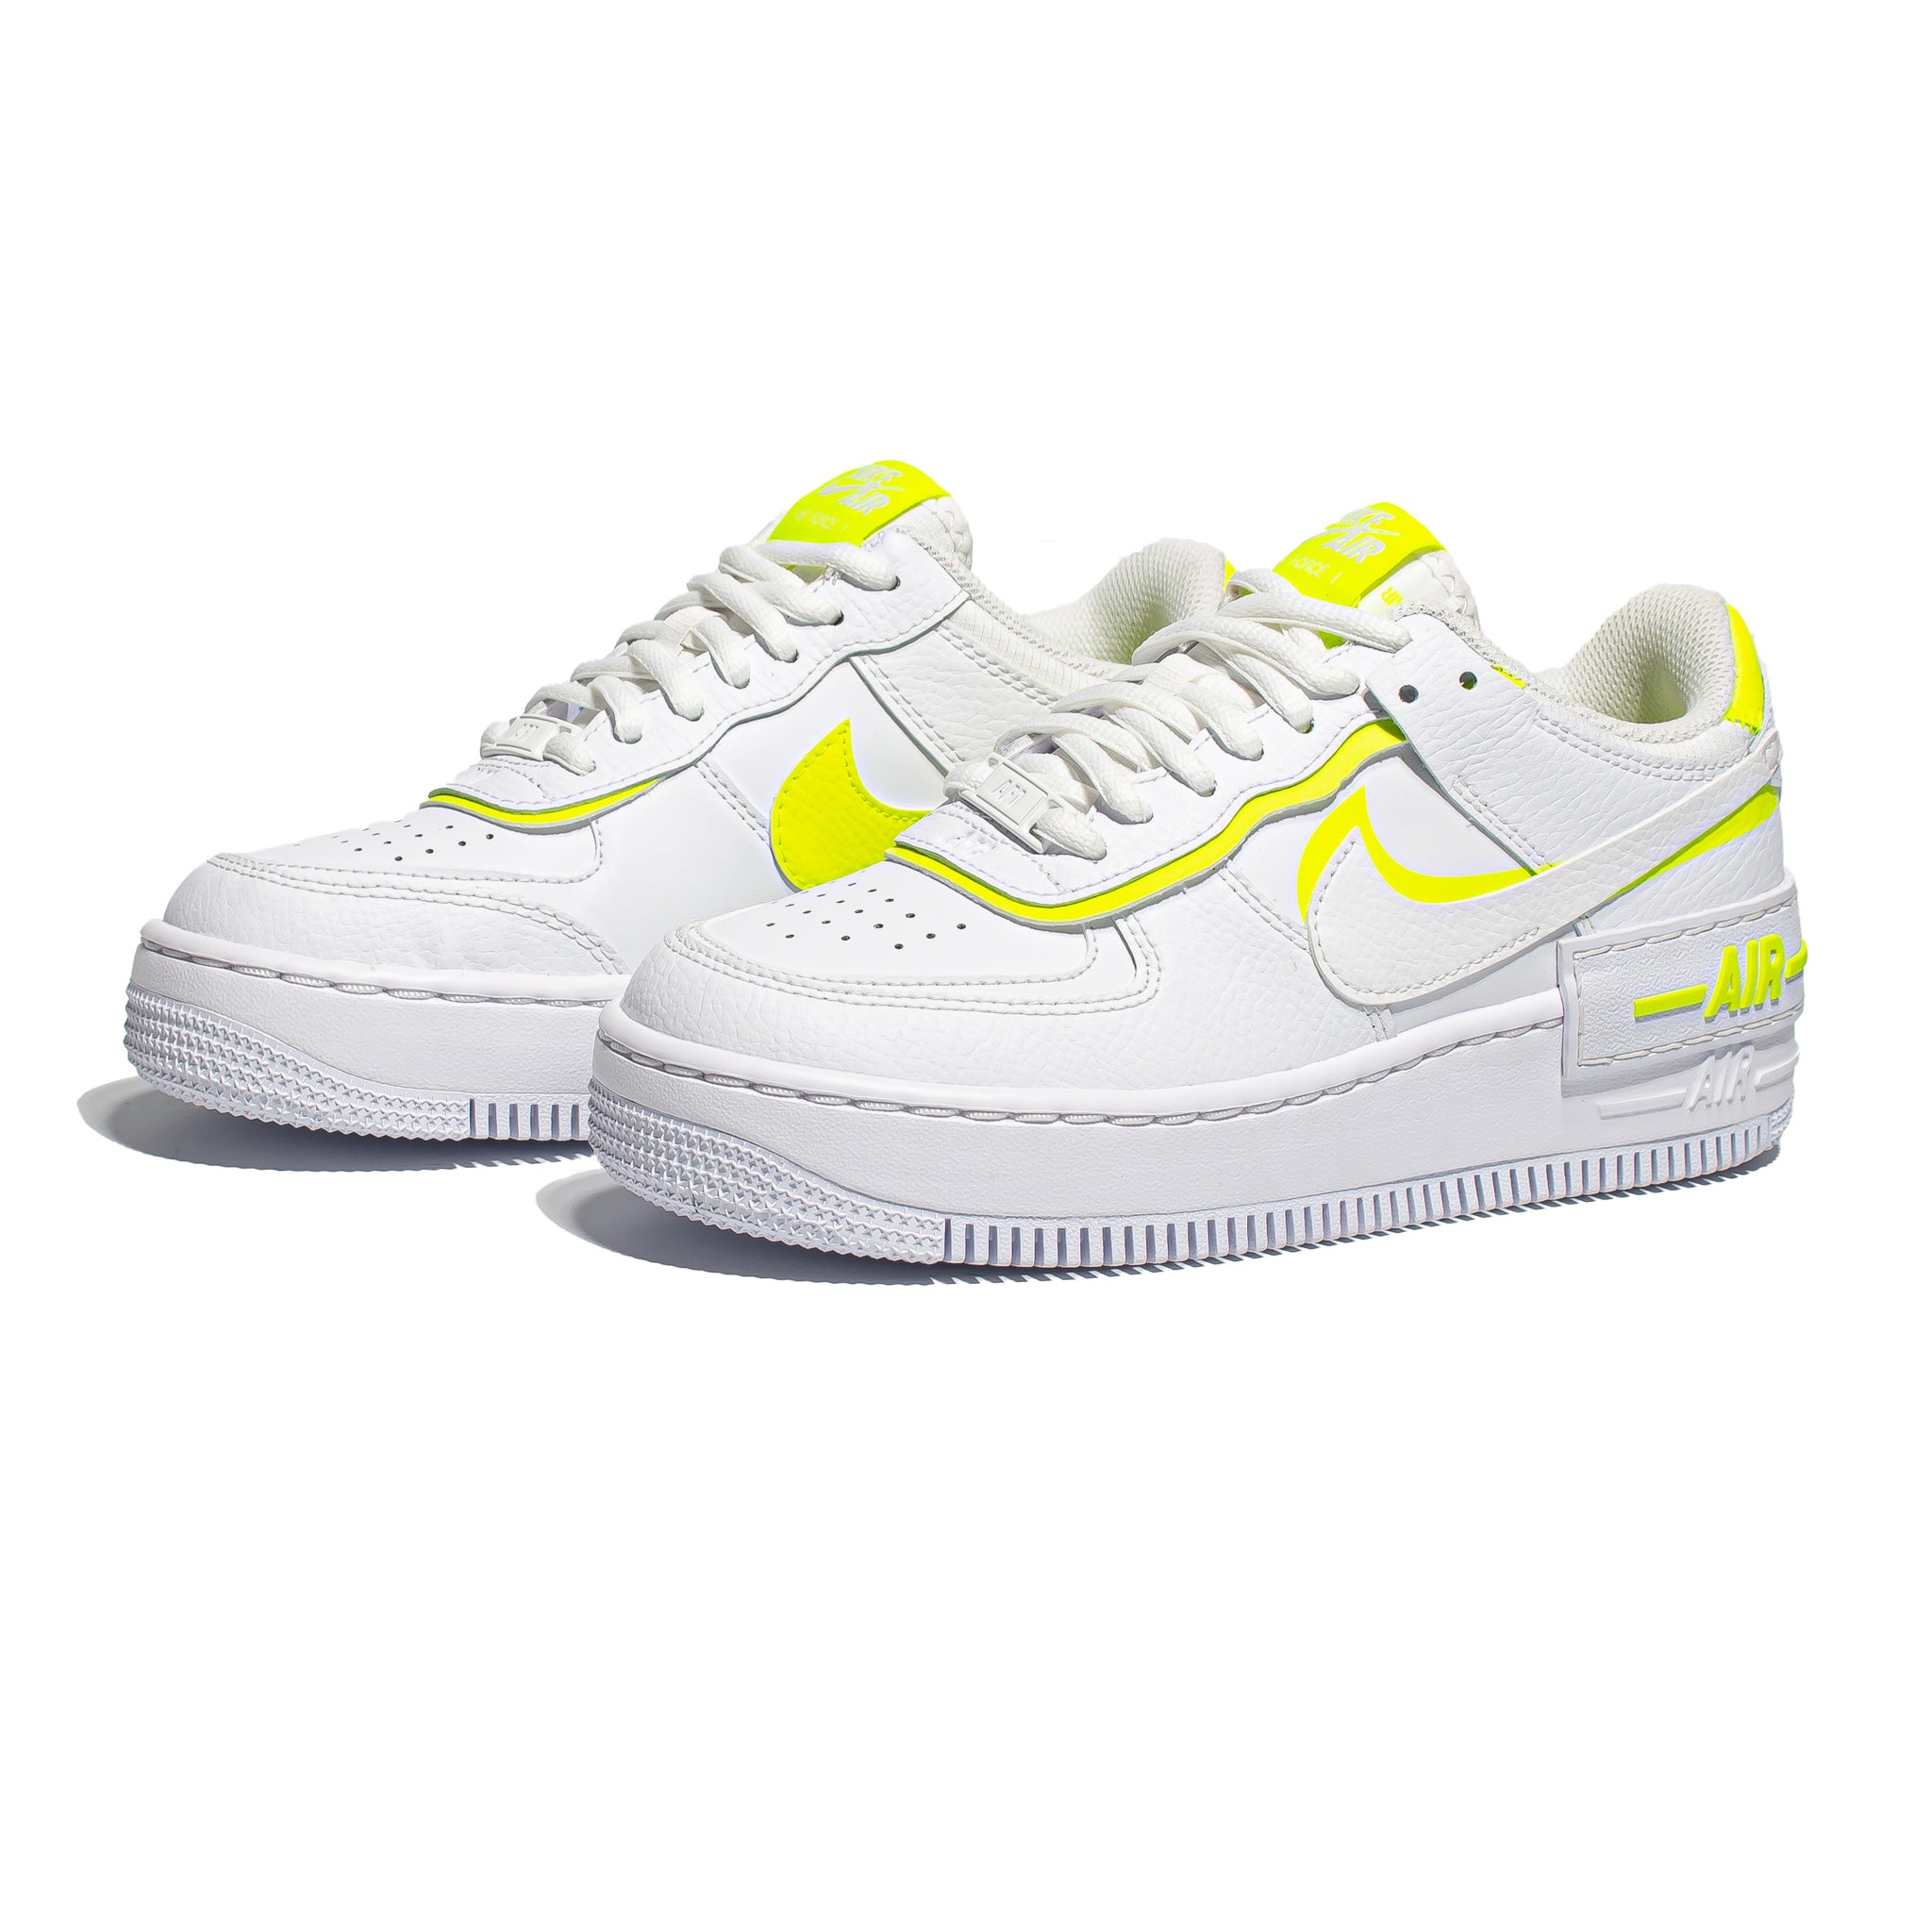 Nike Air Force 1 Shadow 'White/Lemon Venom'